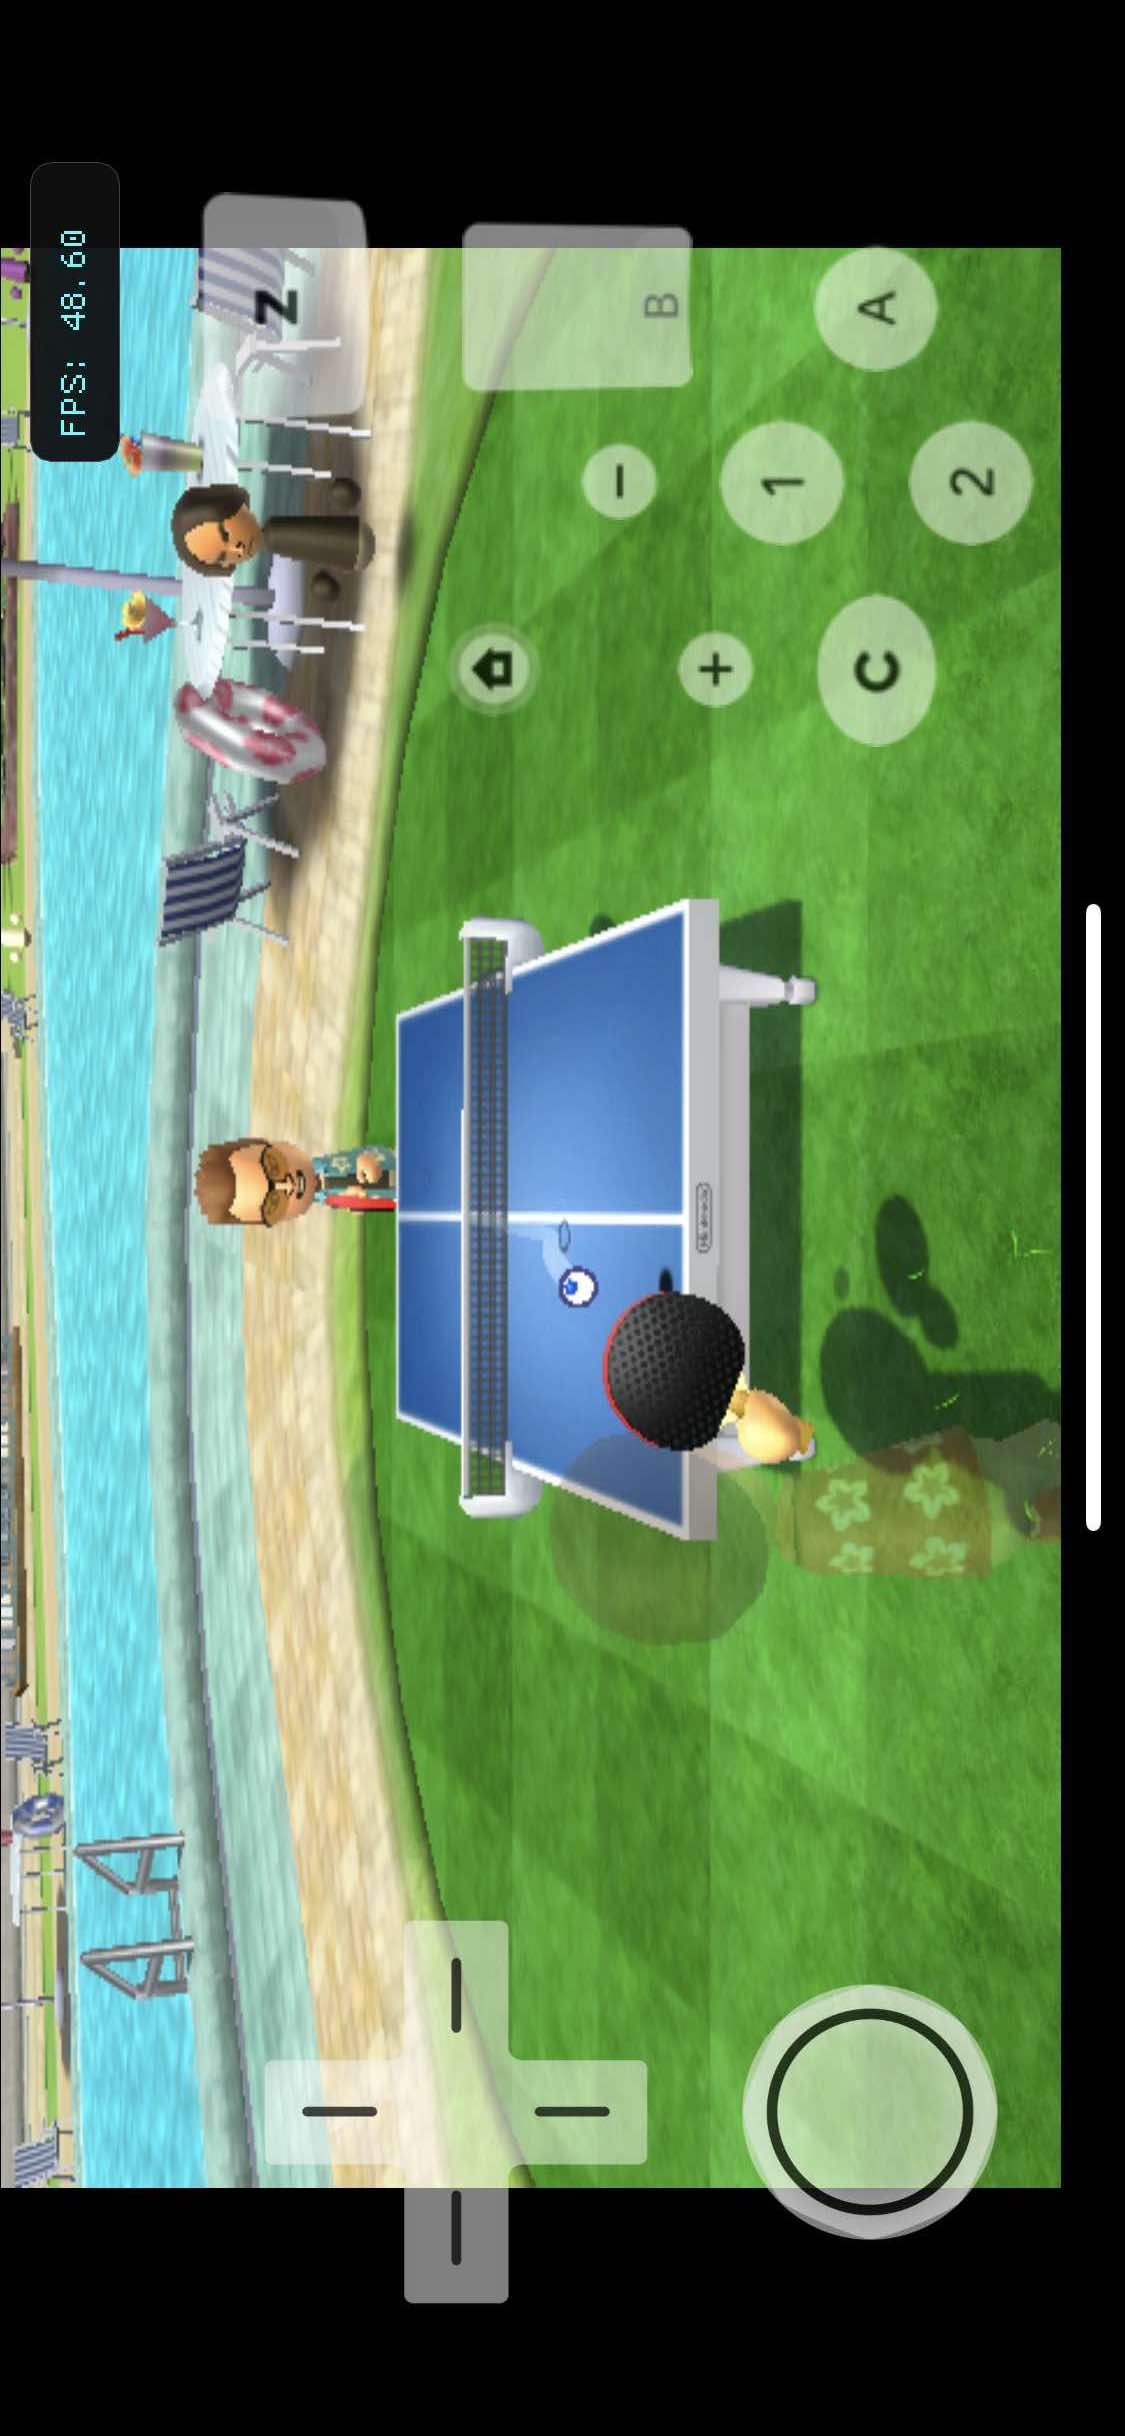 Download Dolphin iOS - Emulate GC and Wii 2.0.1-3